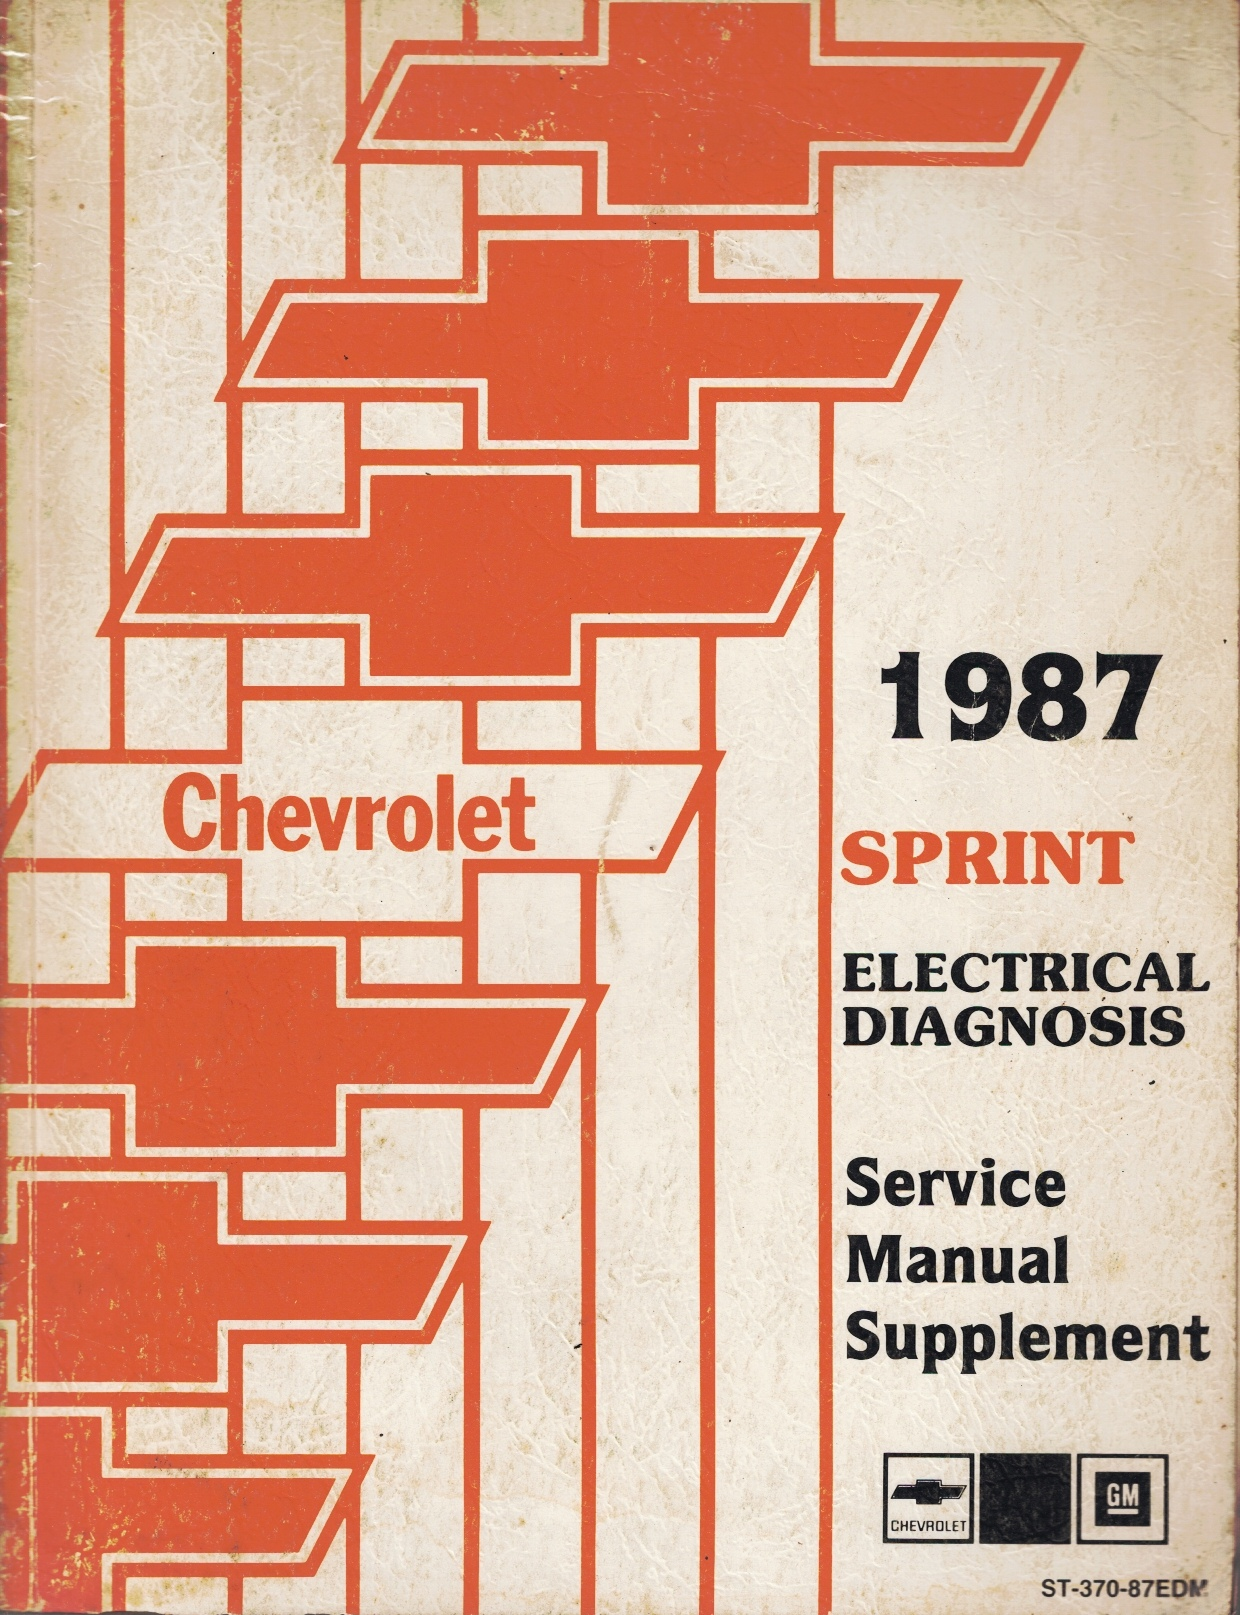 """Image for 1987 Chevrolet Sprint Service Manual - 3 Volume Set; includes the """"Service Manual"""", the """"Electrical Diagnosis Service Manual Supplement"""", and the """"Service Supplement - Covering the Sprint Turbo Model"""""""